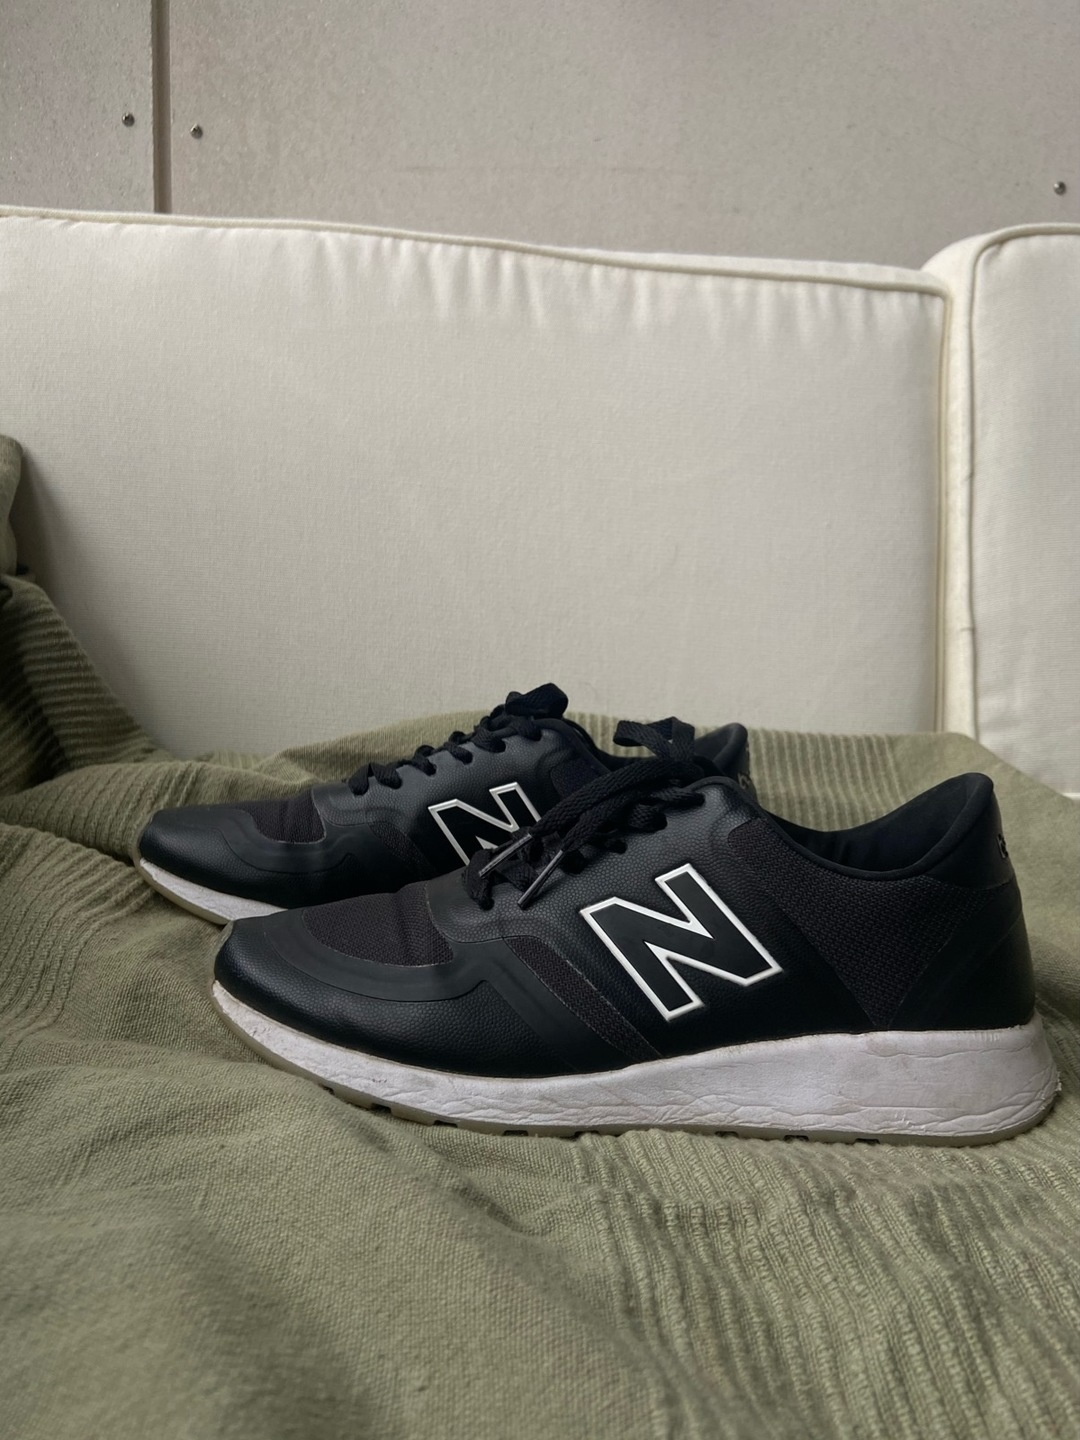 Women's sneakers - NEW BALANCE photo 1